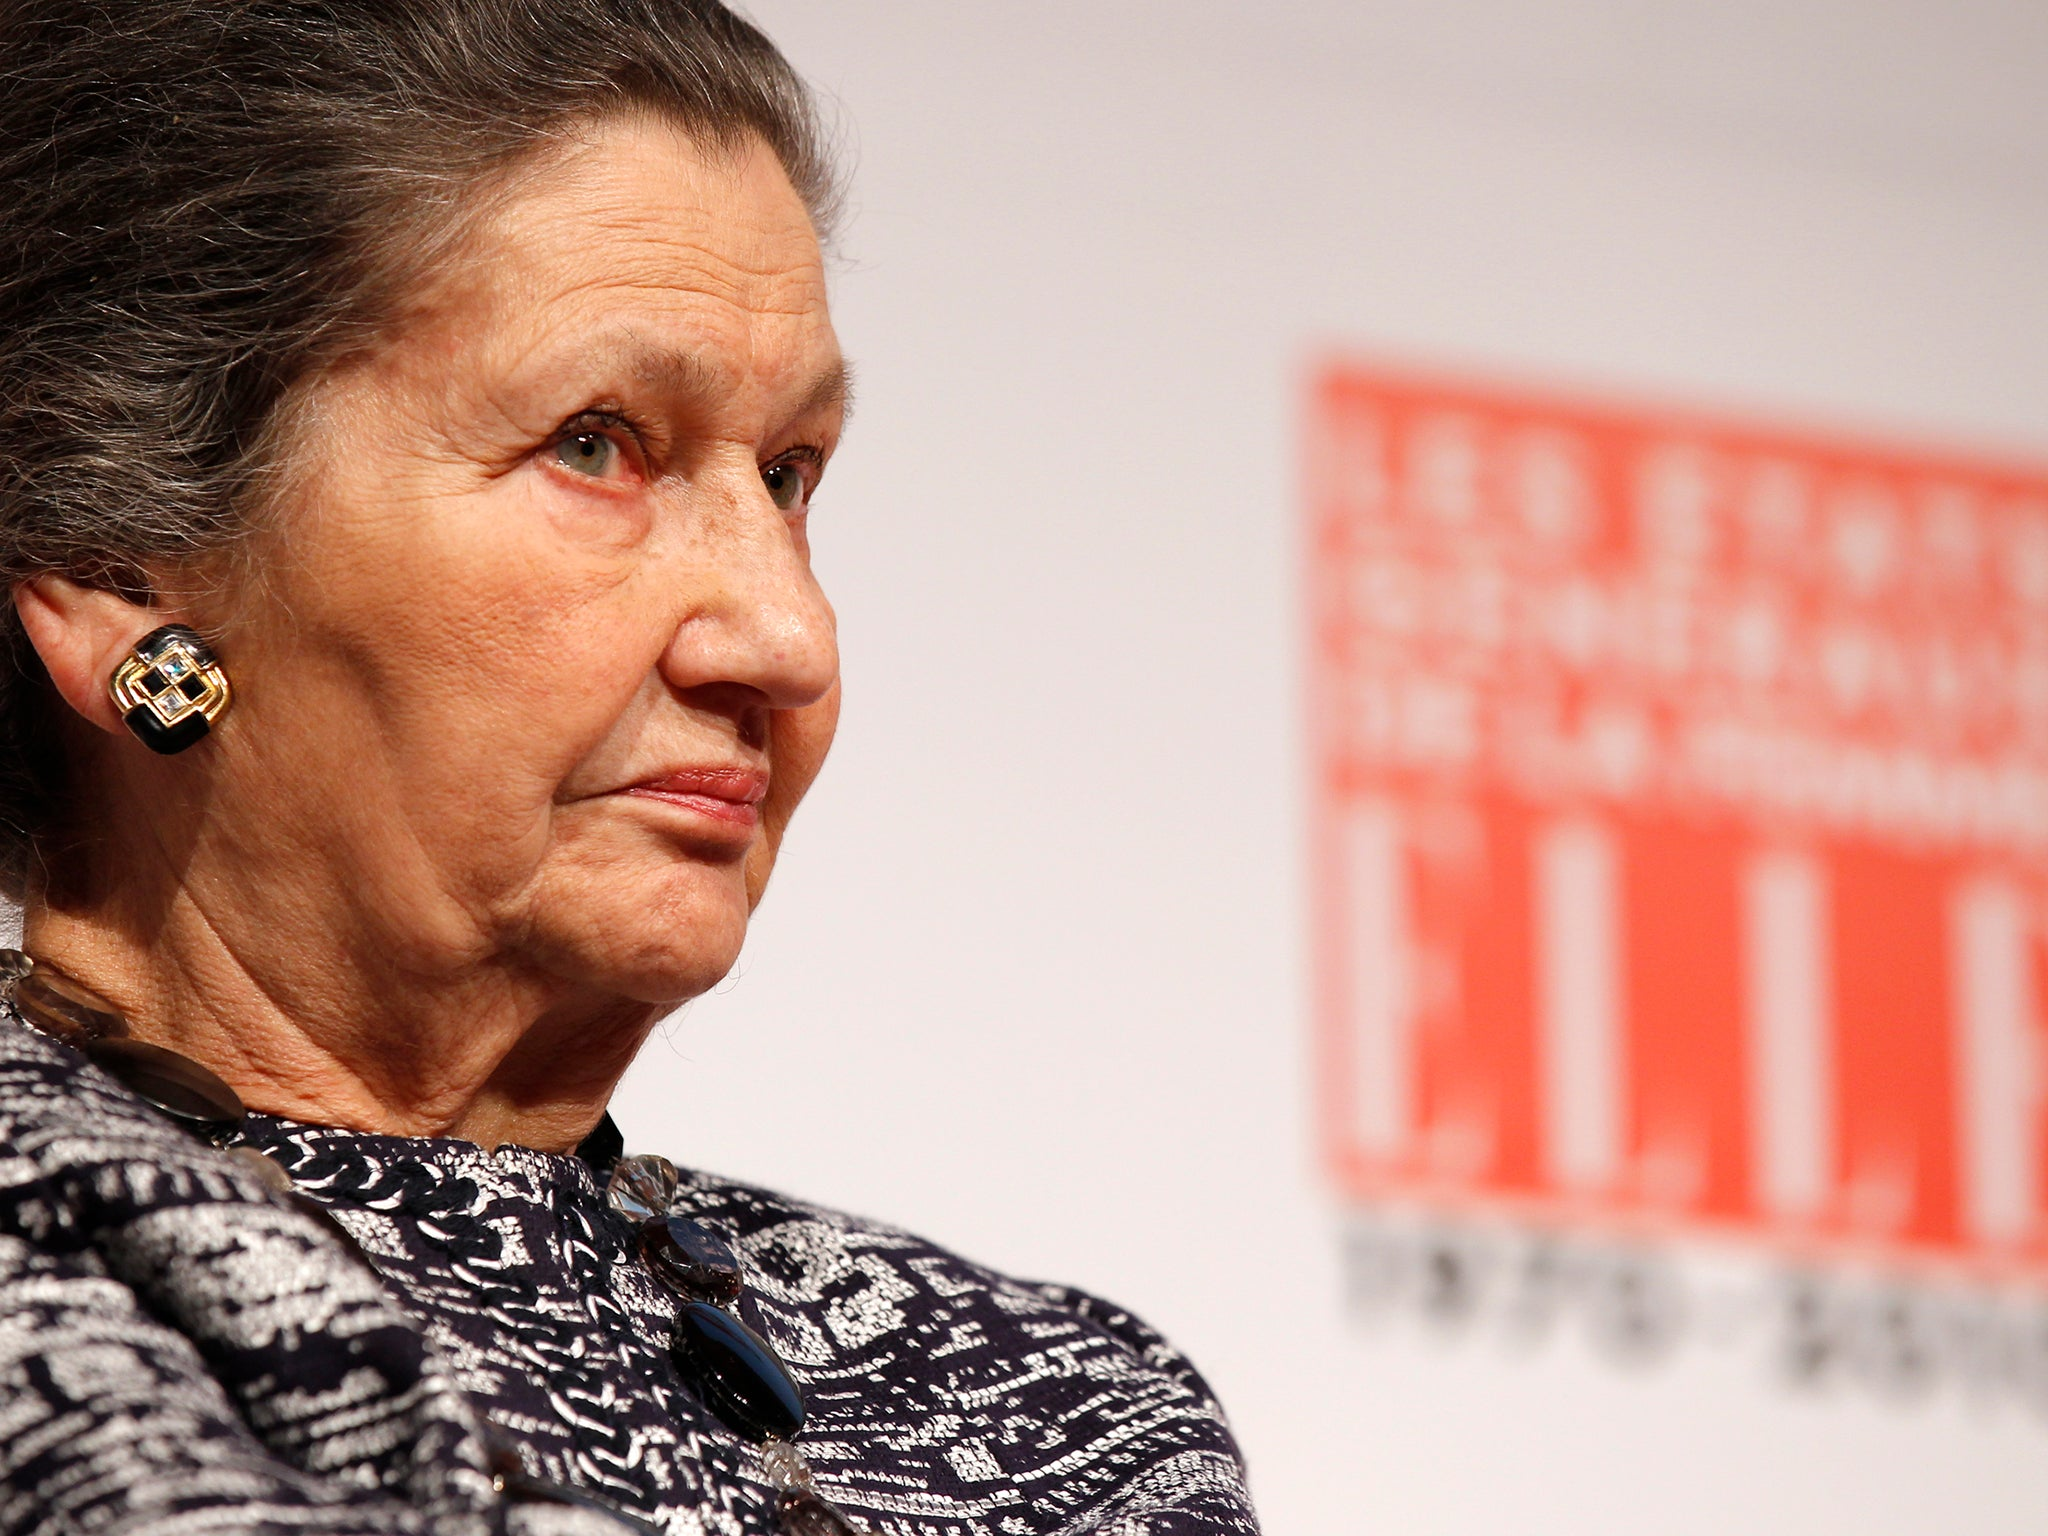 simone veil dead french holocaust survivor who went on to legalise abortion dies aged 89 the. Black Bedroom Furniture Sets. Home Design Ideas